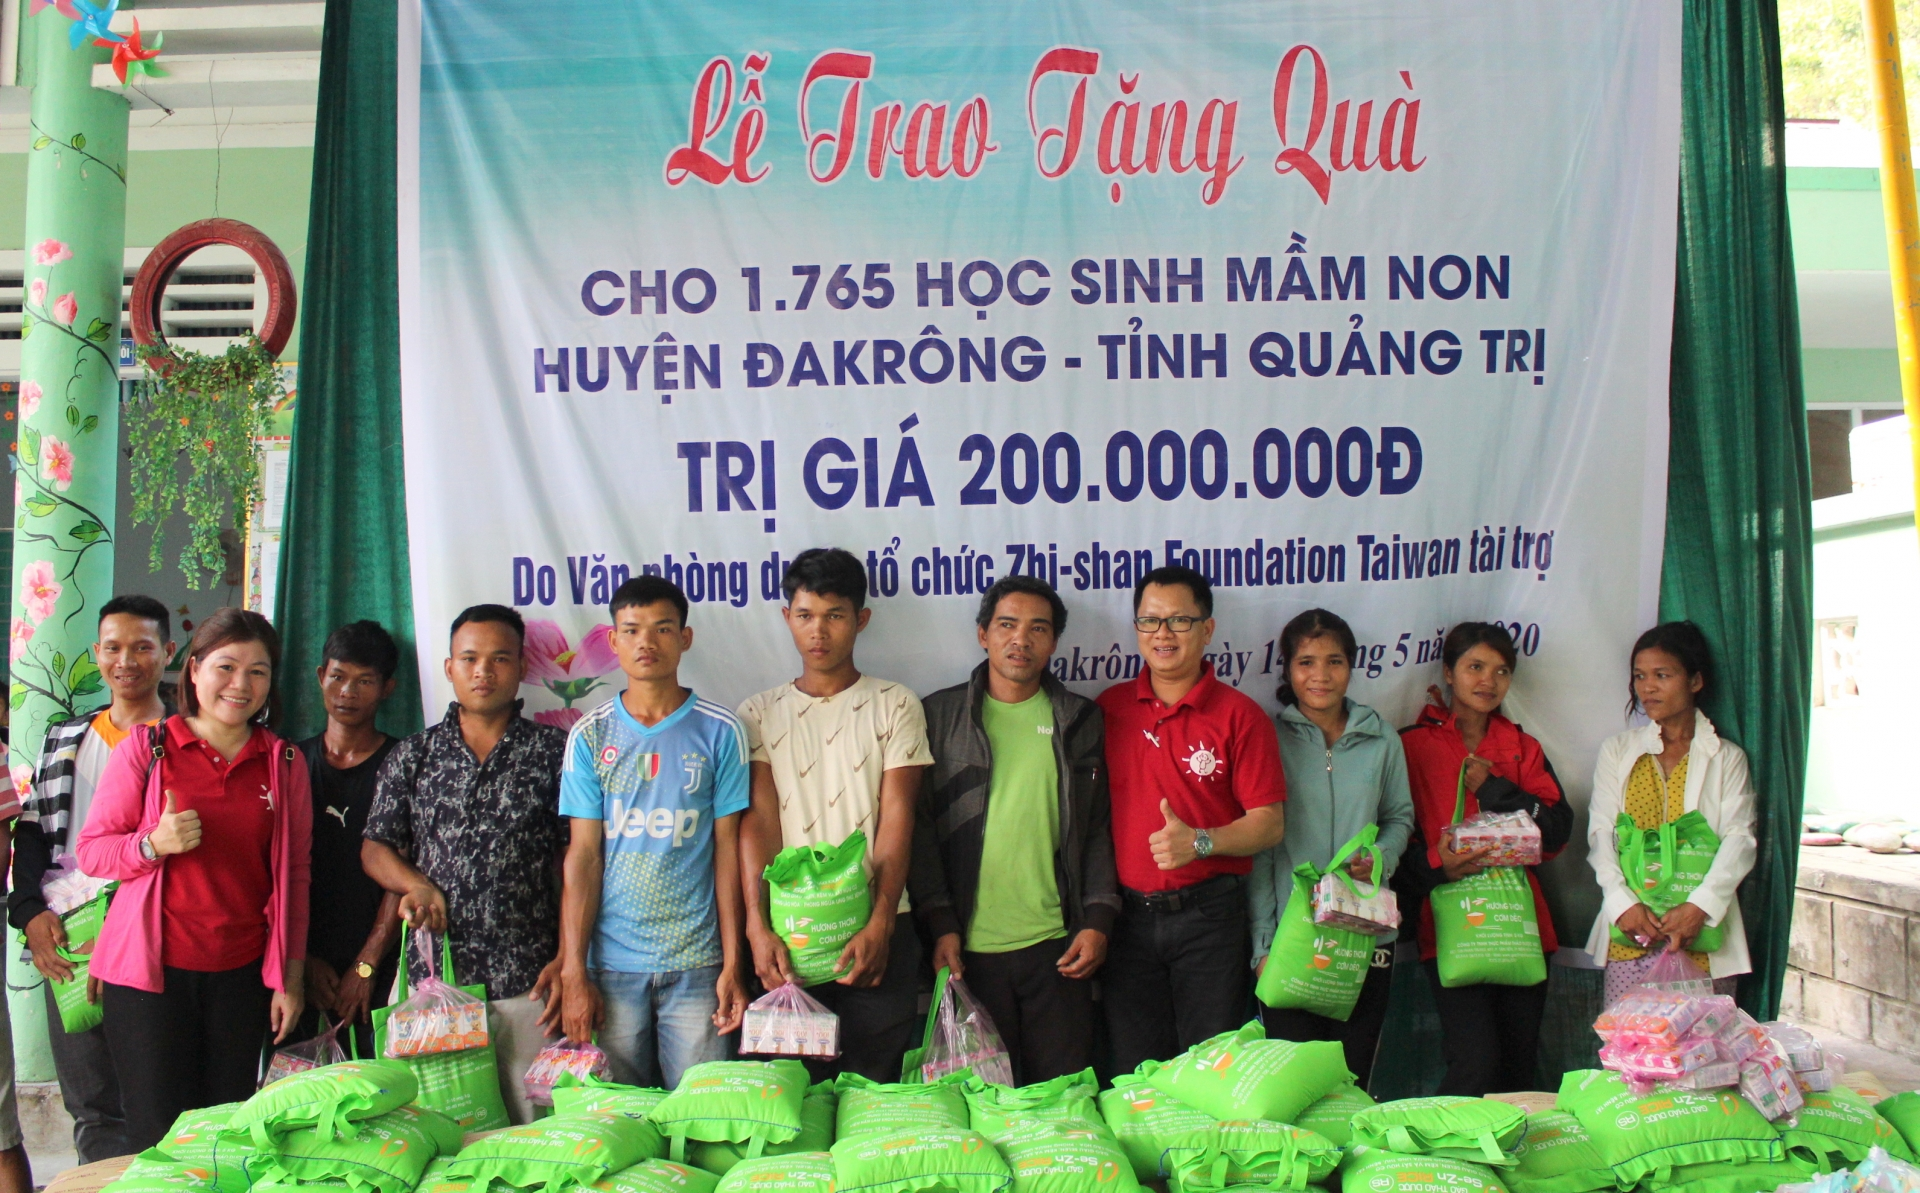 more gifts from zhishan foundation to needy people amid covid 19